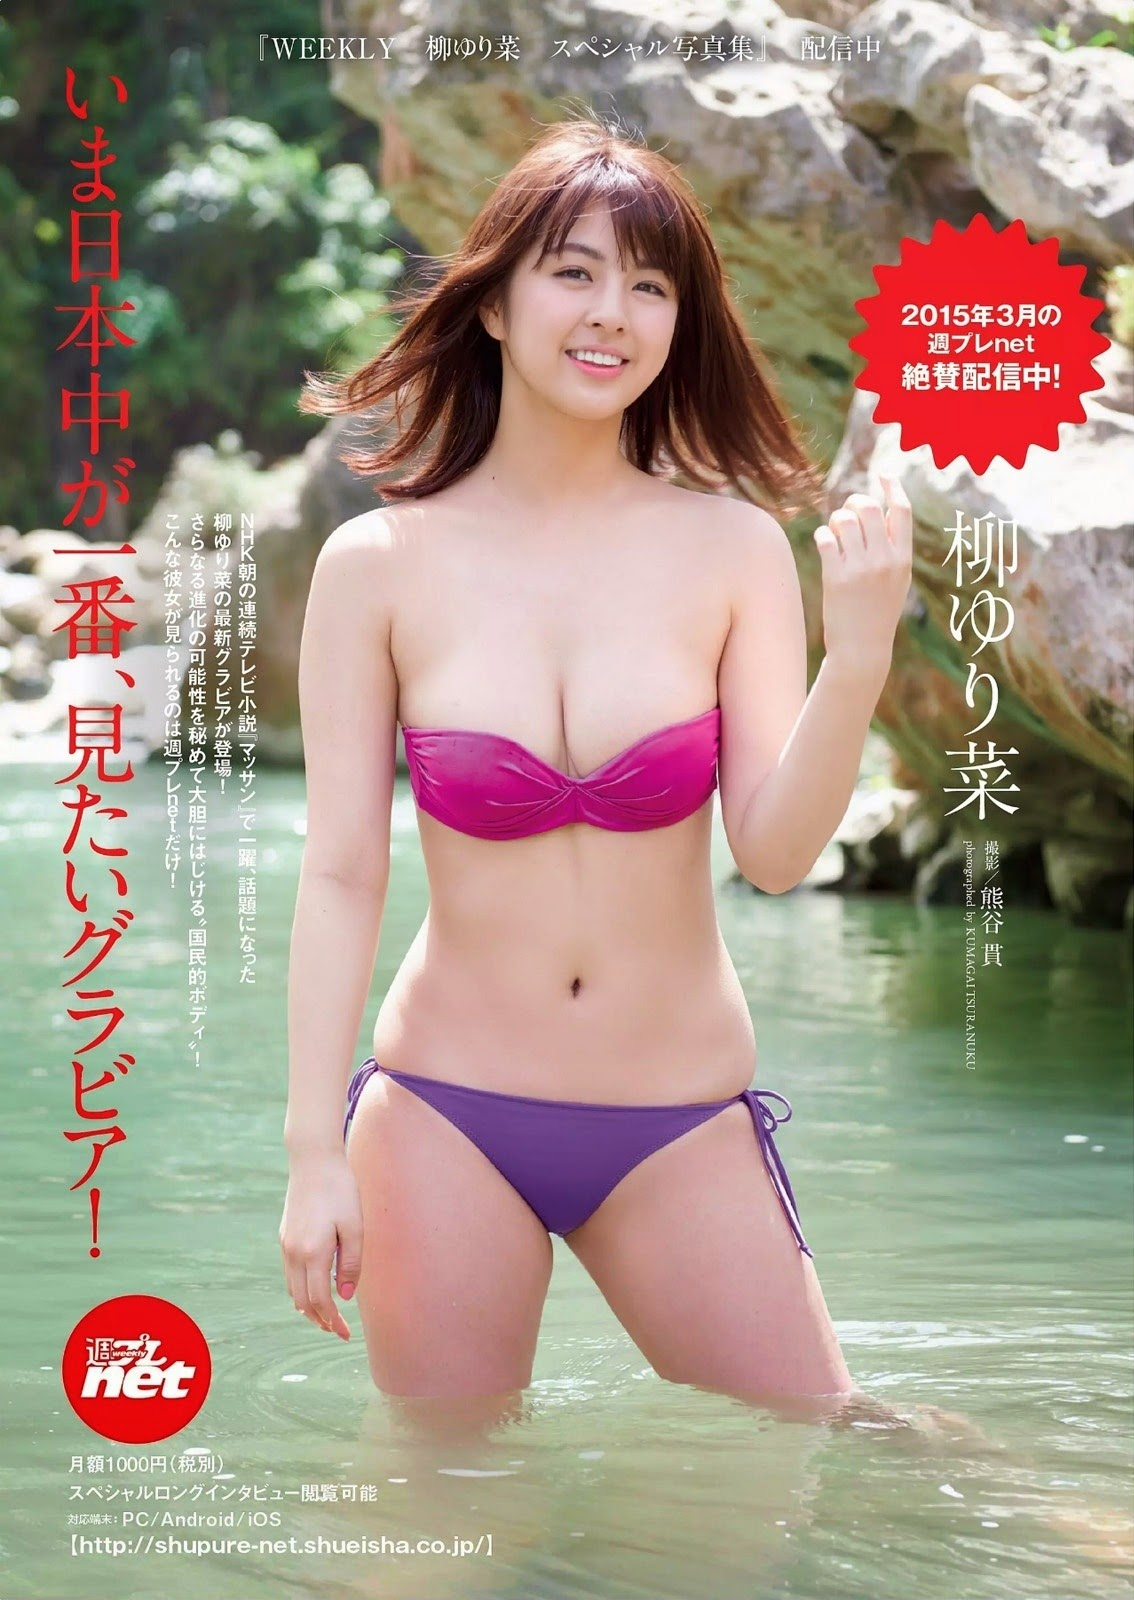 Yanagi Yurina 柳ゆり菜 Weekly Playboy March 2015 Pictures